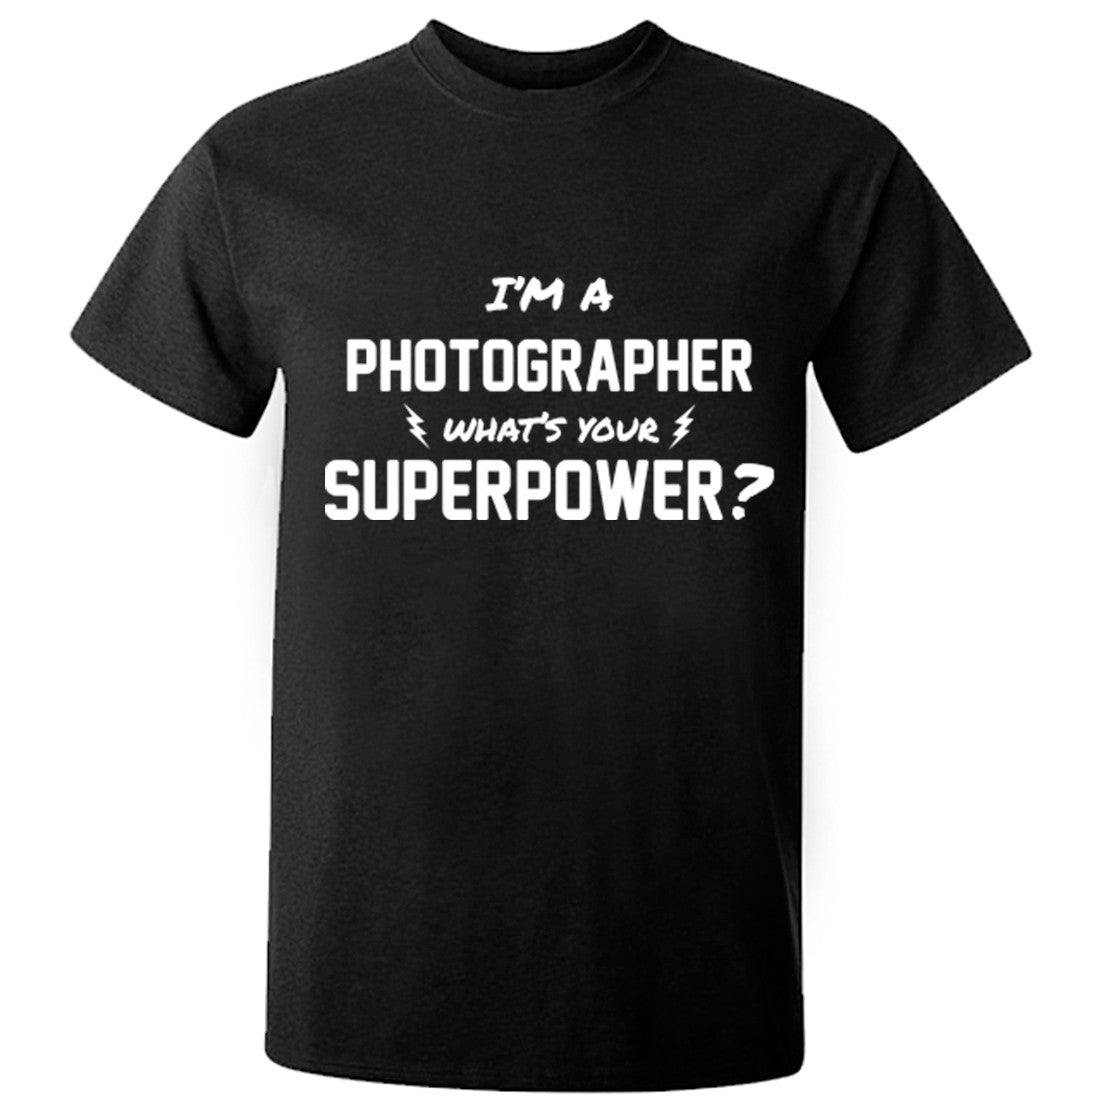 I'm A Photographer What's Your Superpower? Unisex Fit T-Shirt K0741 - Illustrated Identity Ltd.